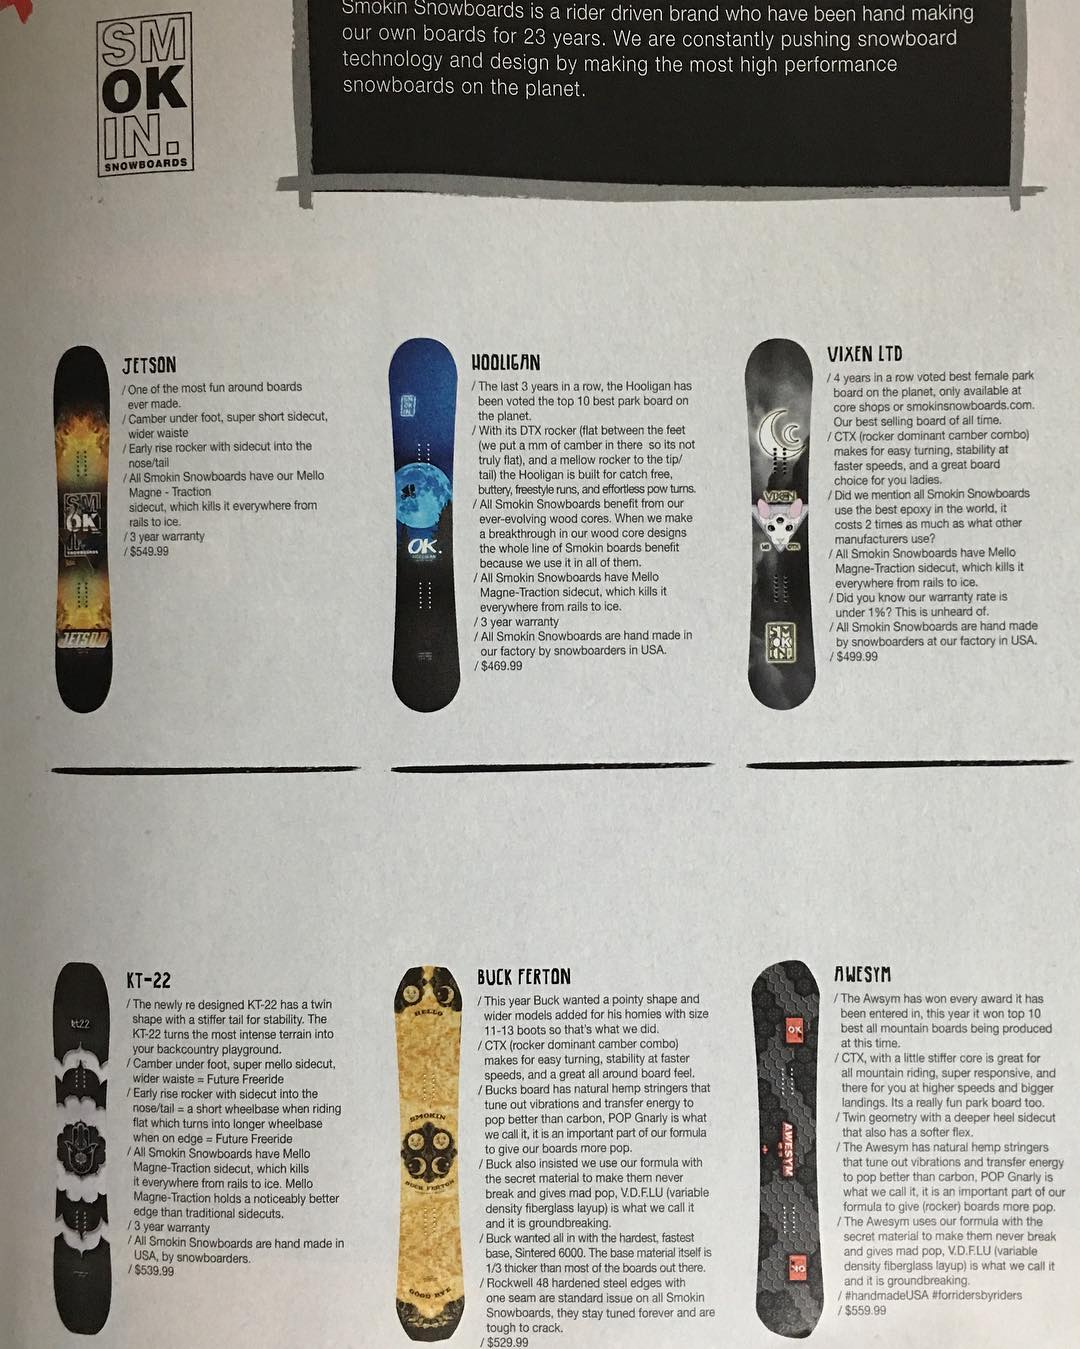 Here's a shot in @snowboardermag , here are some boards we recommend to our friends. #forridersbyriders | #handmadeusa | #mellomagnetraction | #awardwinningperformance | #smokinsnowboards